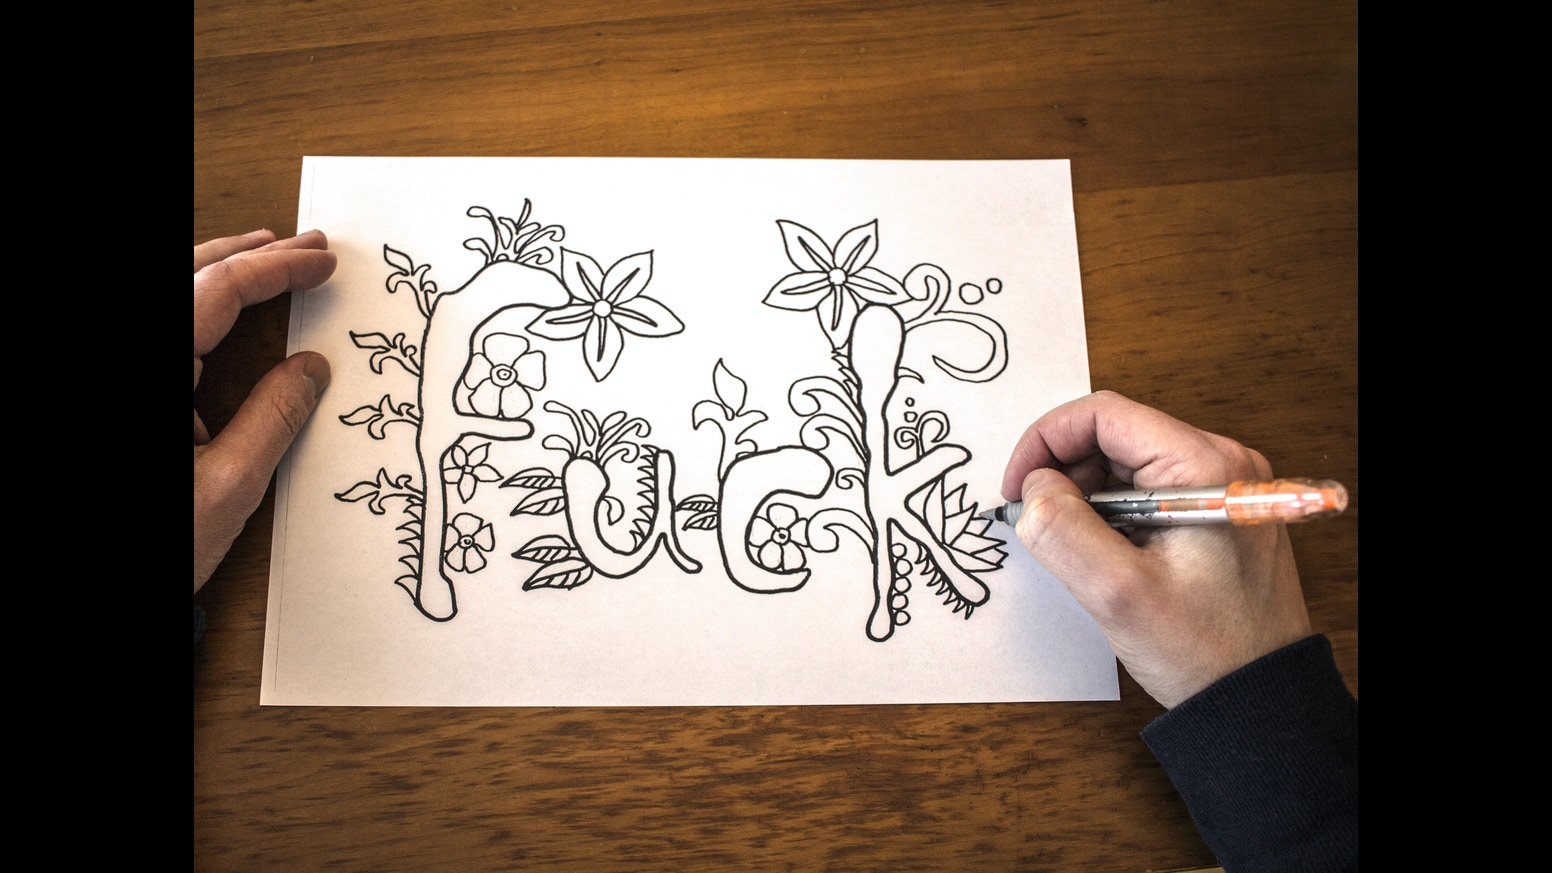 Swearing colouring in book nz - Swear Adult Coloring Book Is A Book Full Of Hand Drawn Swear Words Coloring